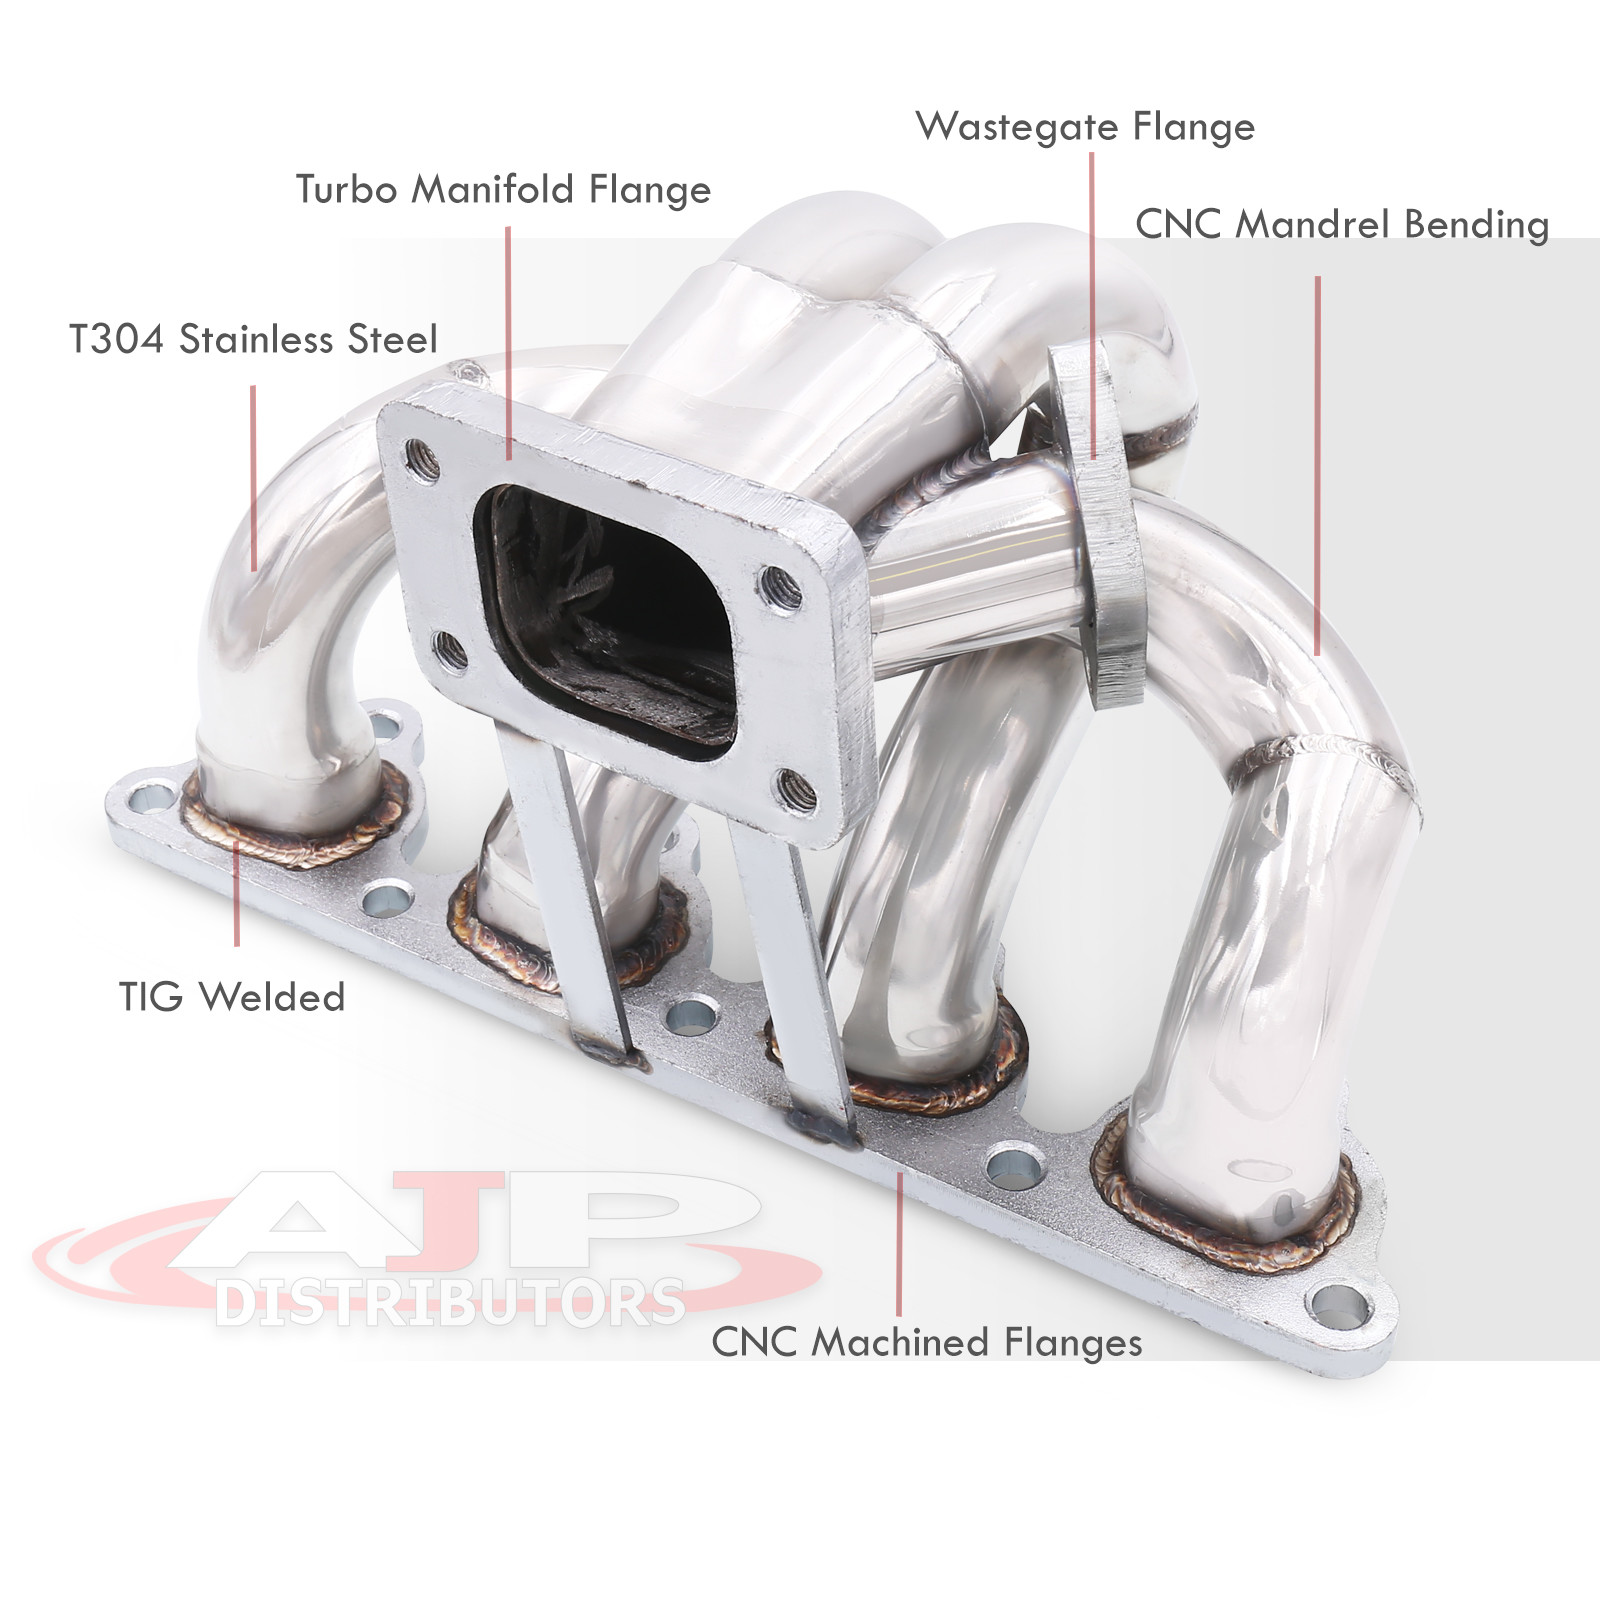 T3 T3//T4 Turbo Flanged Cast Iron Exhaust Manifold Upgrade with Centered 35//38mm Wastegate Flange For D-Series Sohc Engines